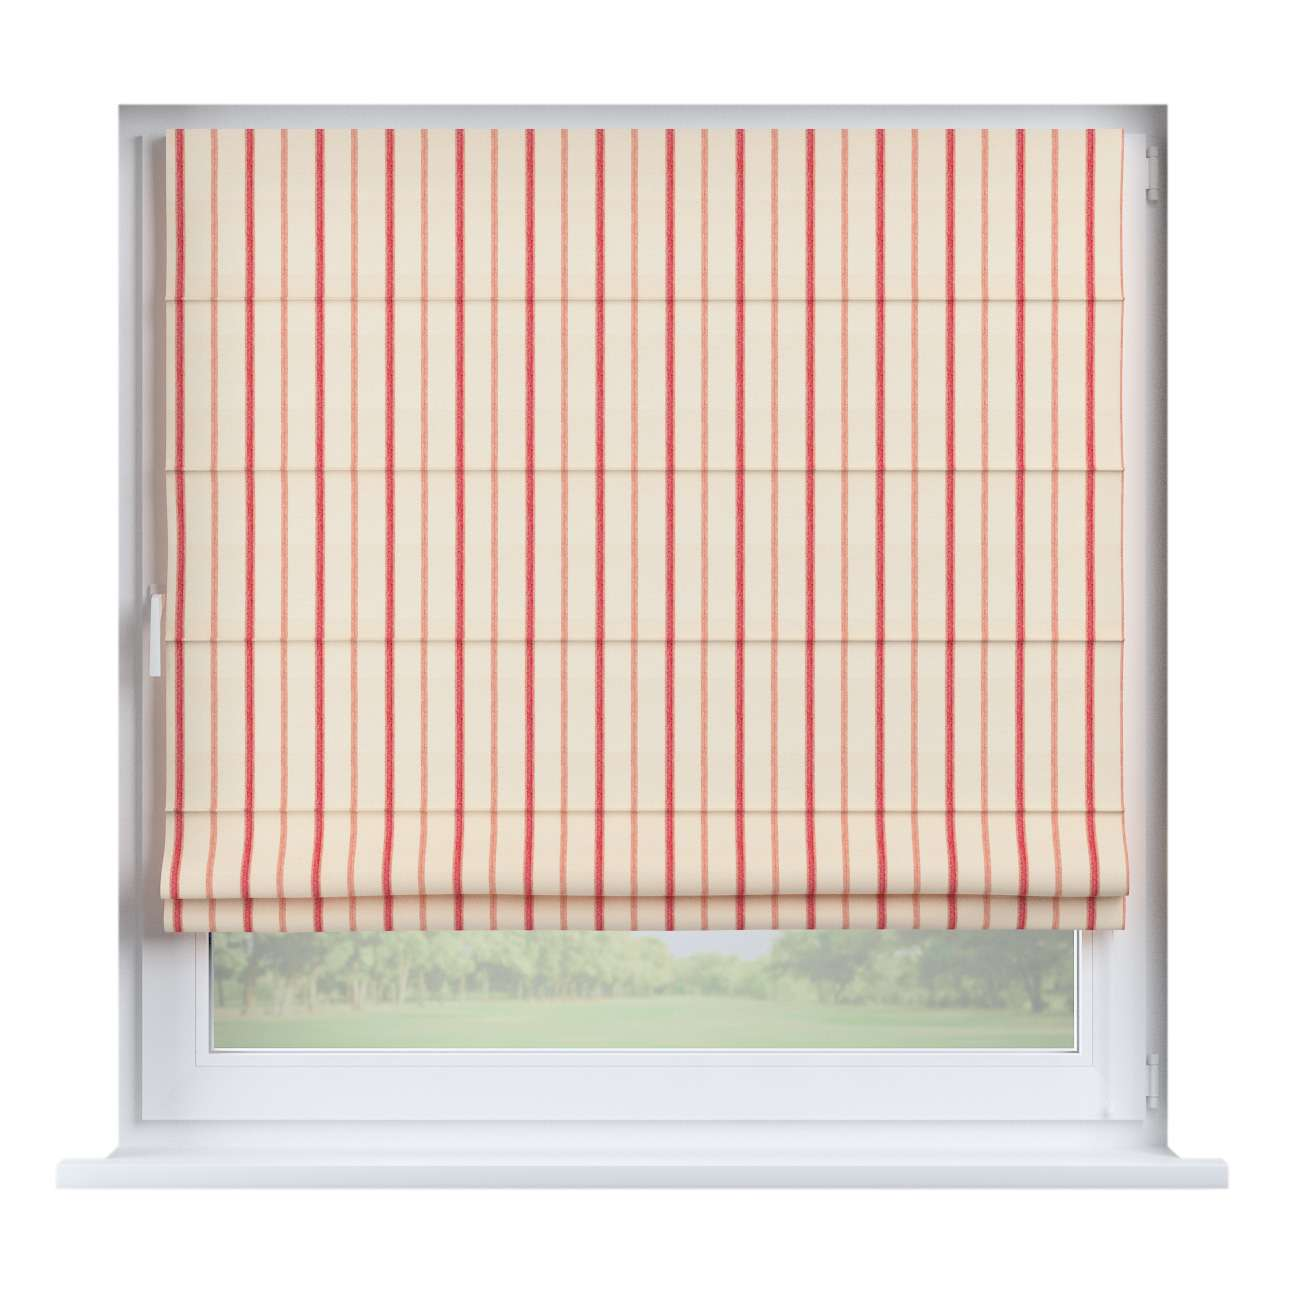 Capri roman blind in collection Avinon, fabric: 129-15